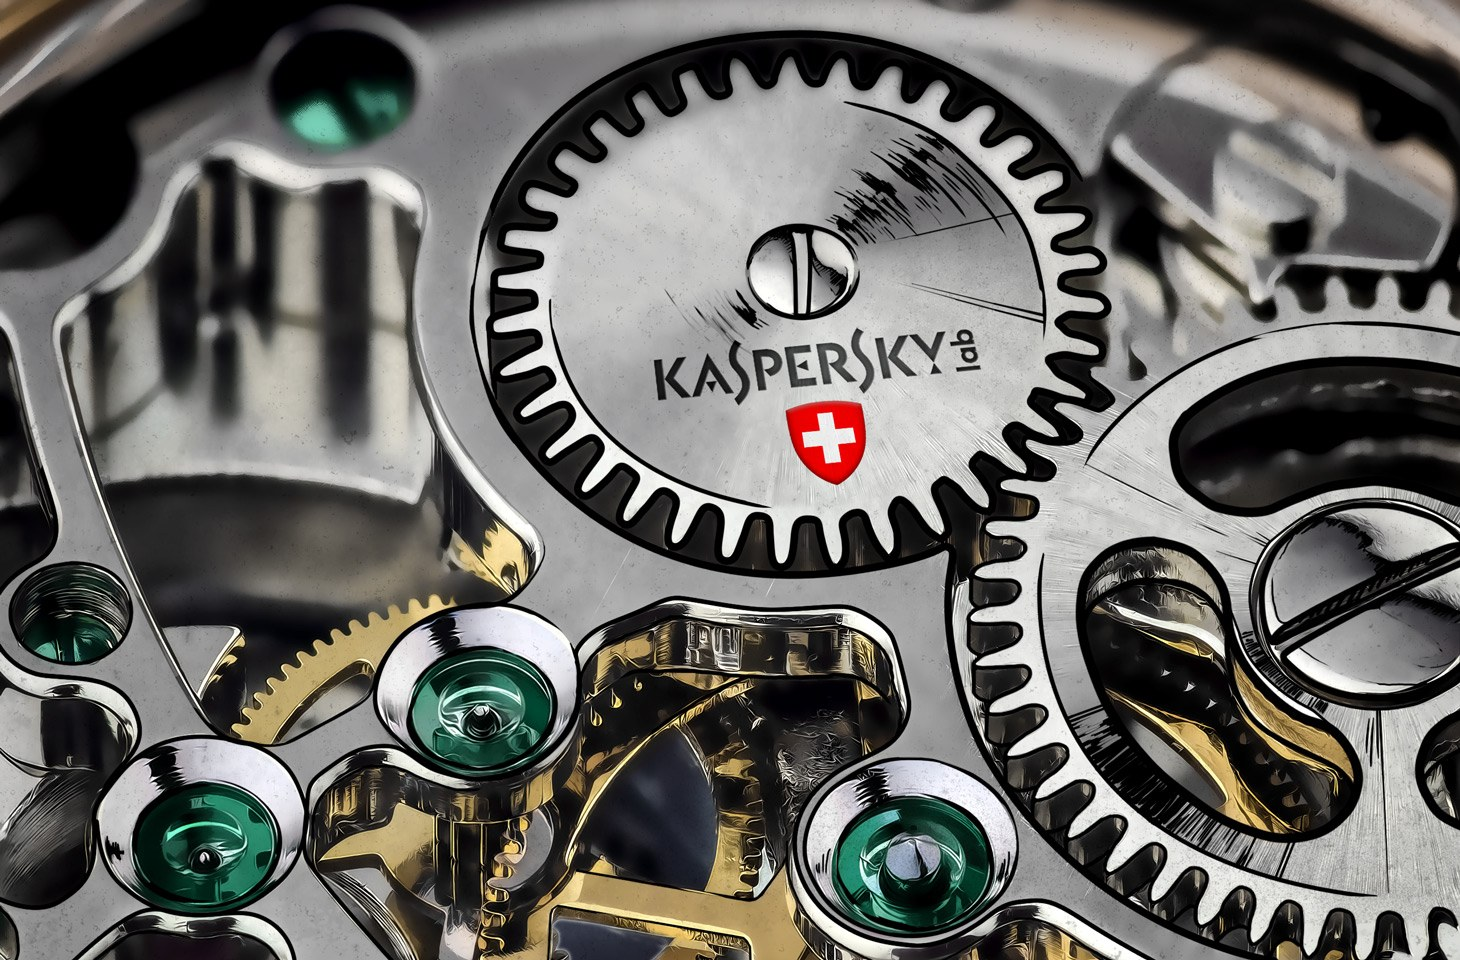 kaspersky-swiss-assembled-security-featured